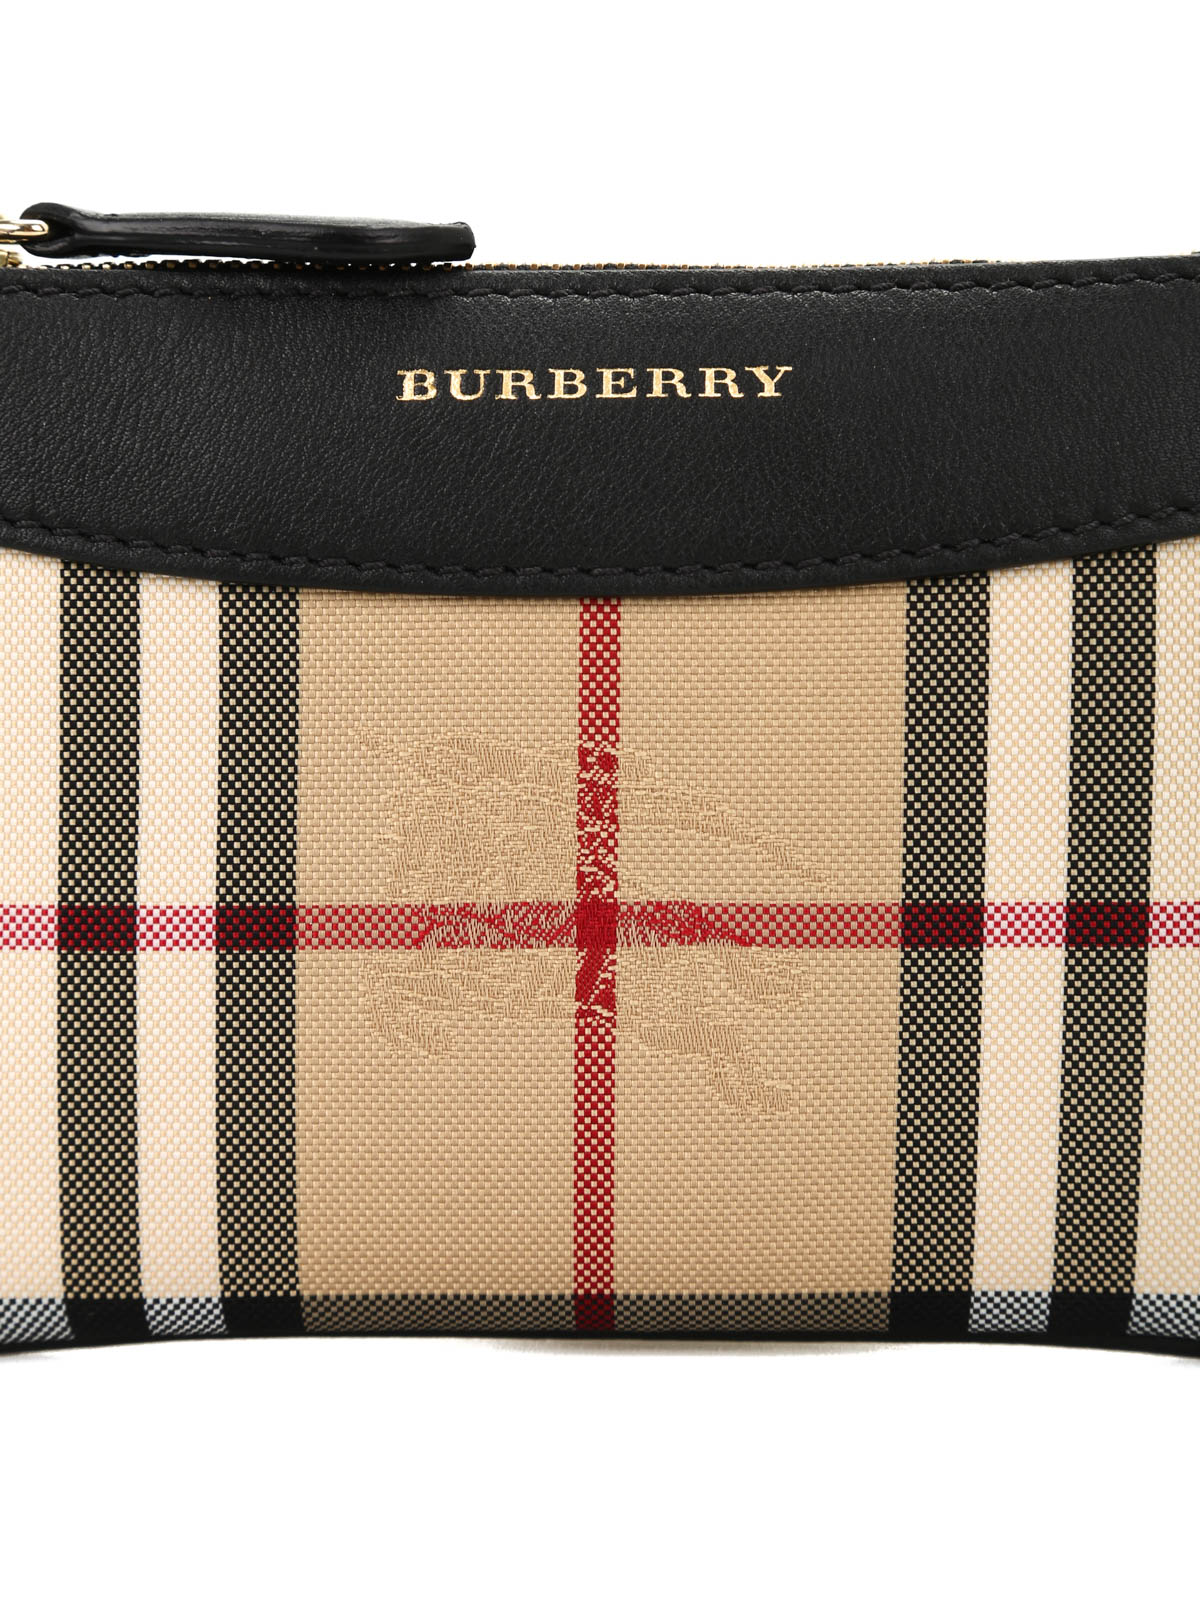 fd8b4456bbd7 Burberry - Jacquard and leather pouch - wallets   purses - 40111121 ...